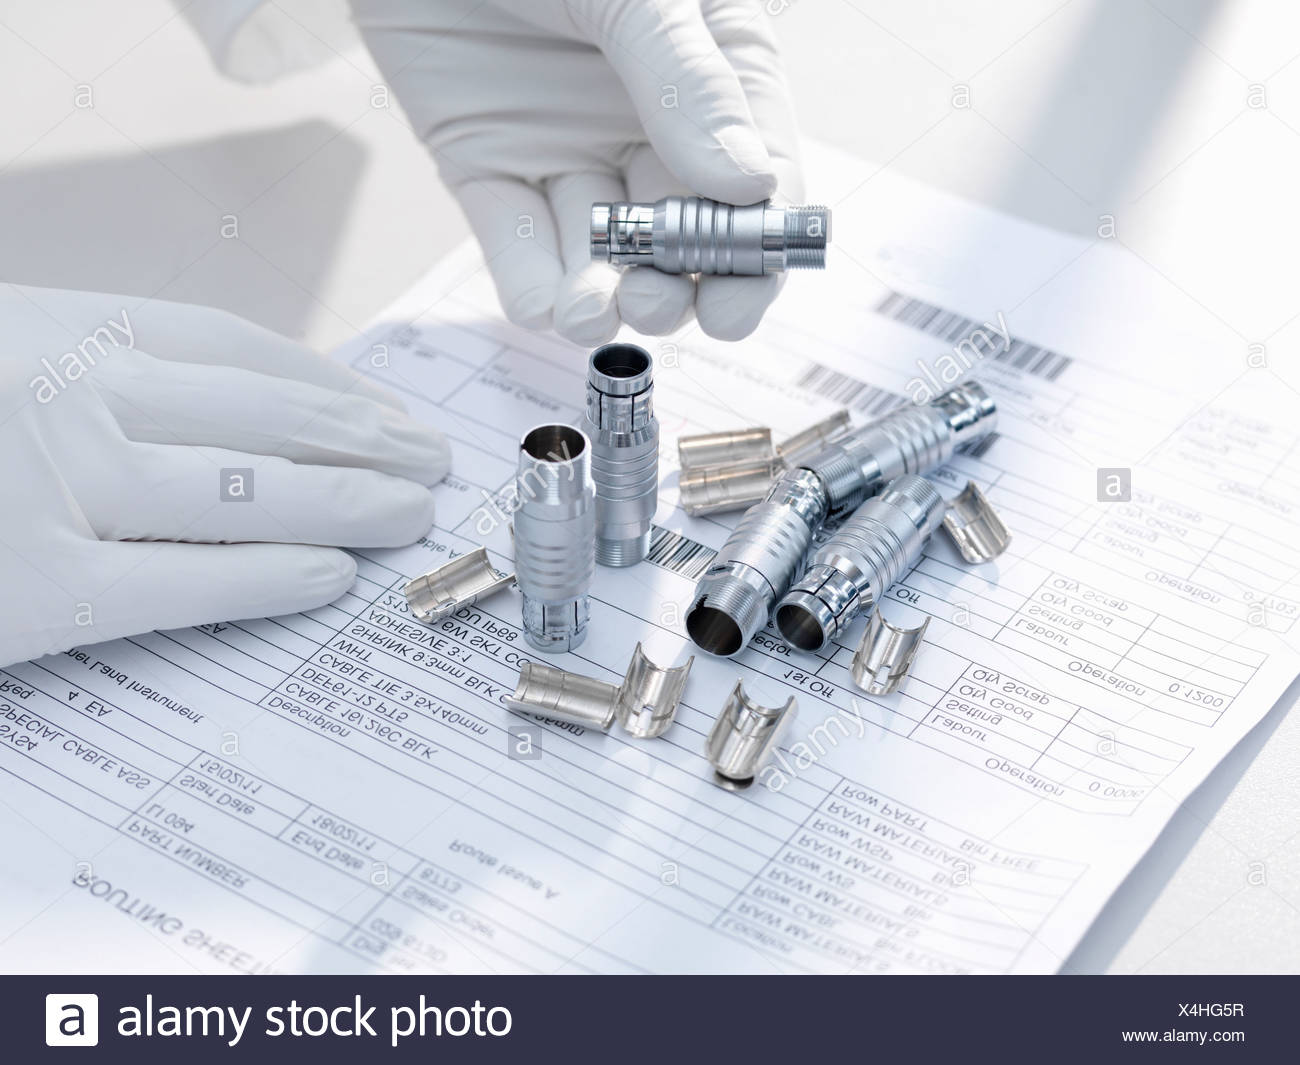 Hands holding electronic parts - Stock Image